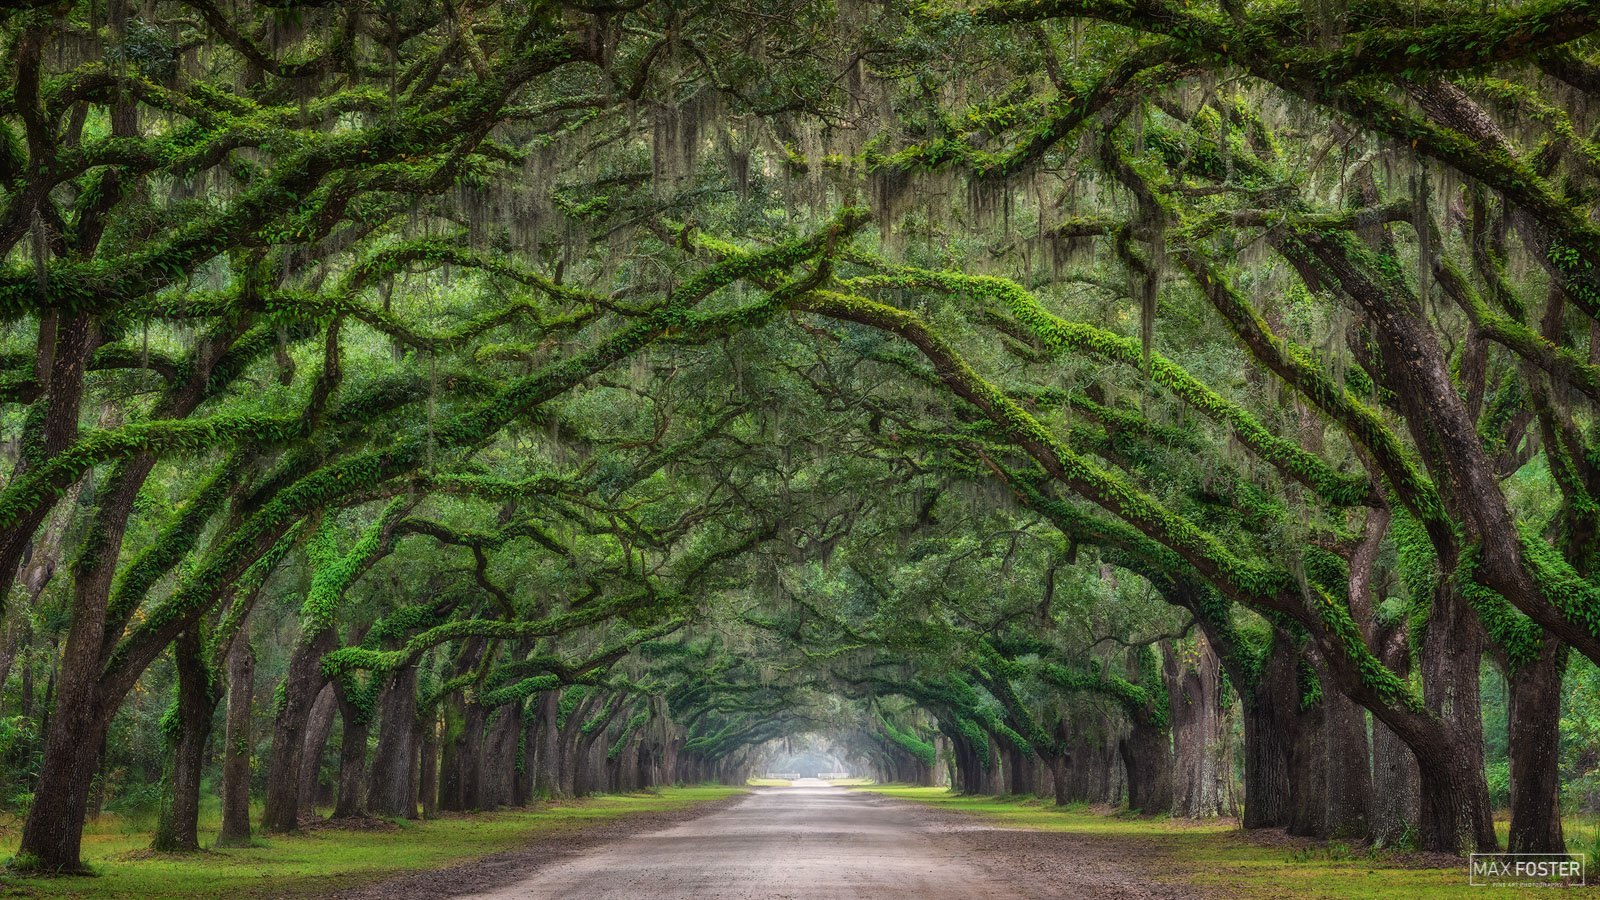 Tunnel Vision, Wormsloe Plantation, Savannah, Georgia. Limited Edition.